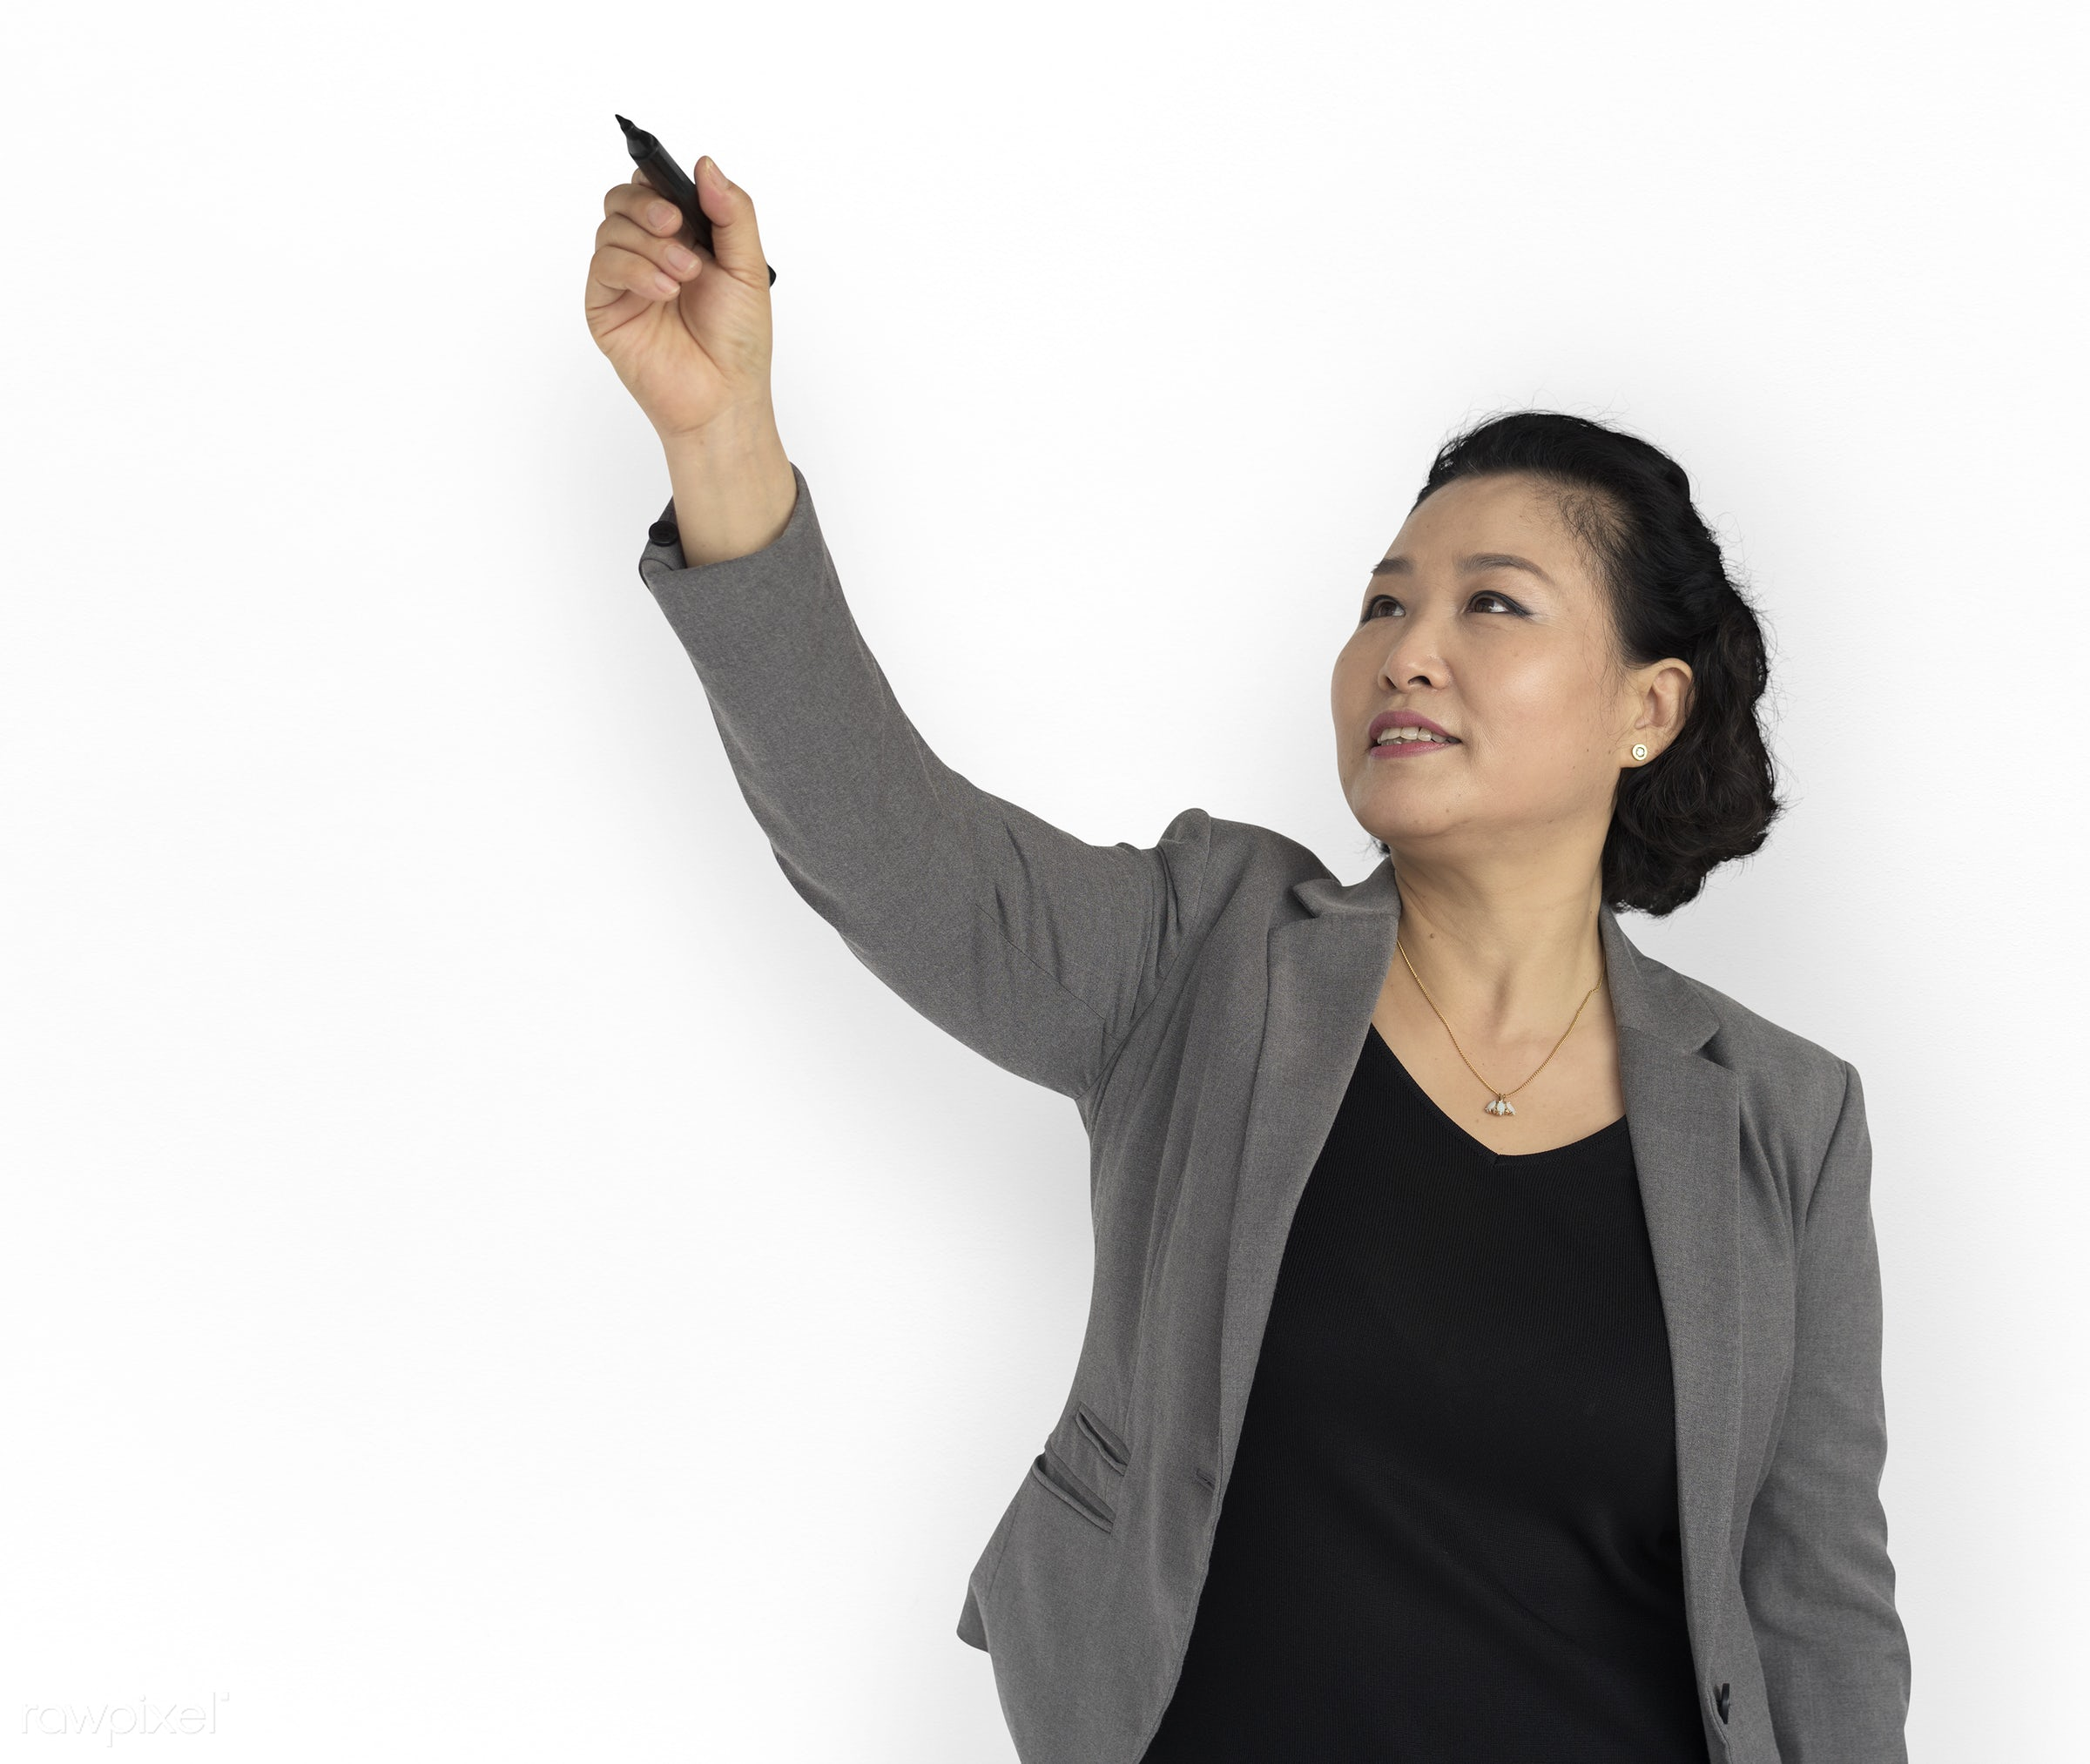 studio, expression, holding marker, old, person, people, asian, woman, smile, positive, cheerful, formal attire, smiling,...